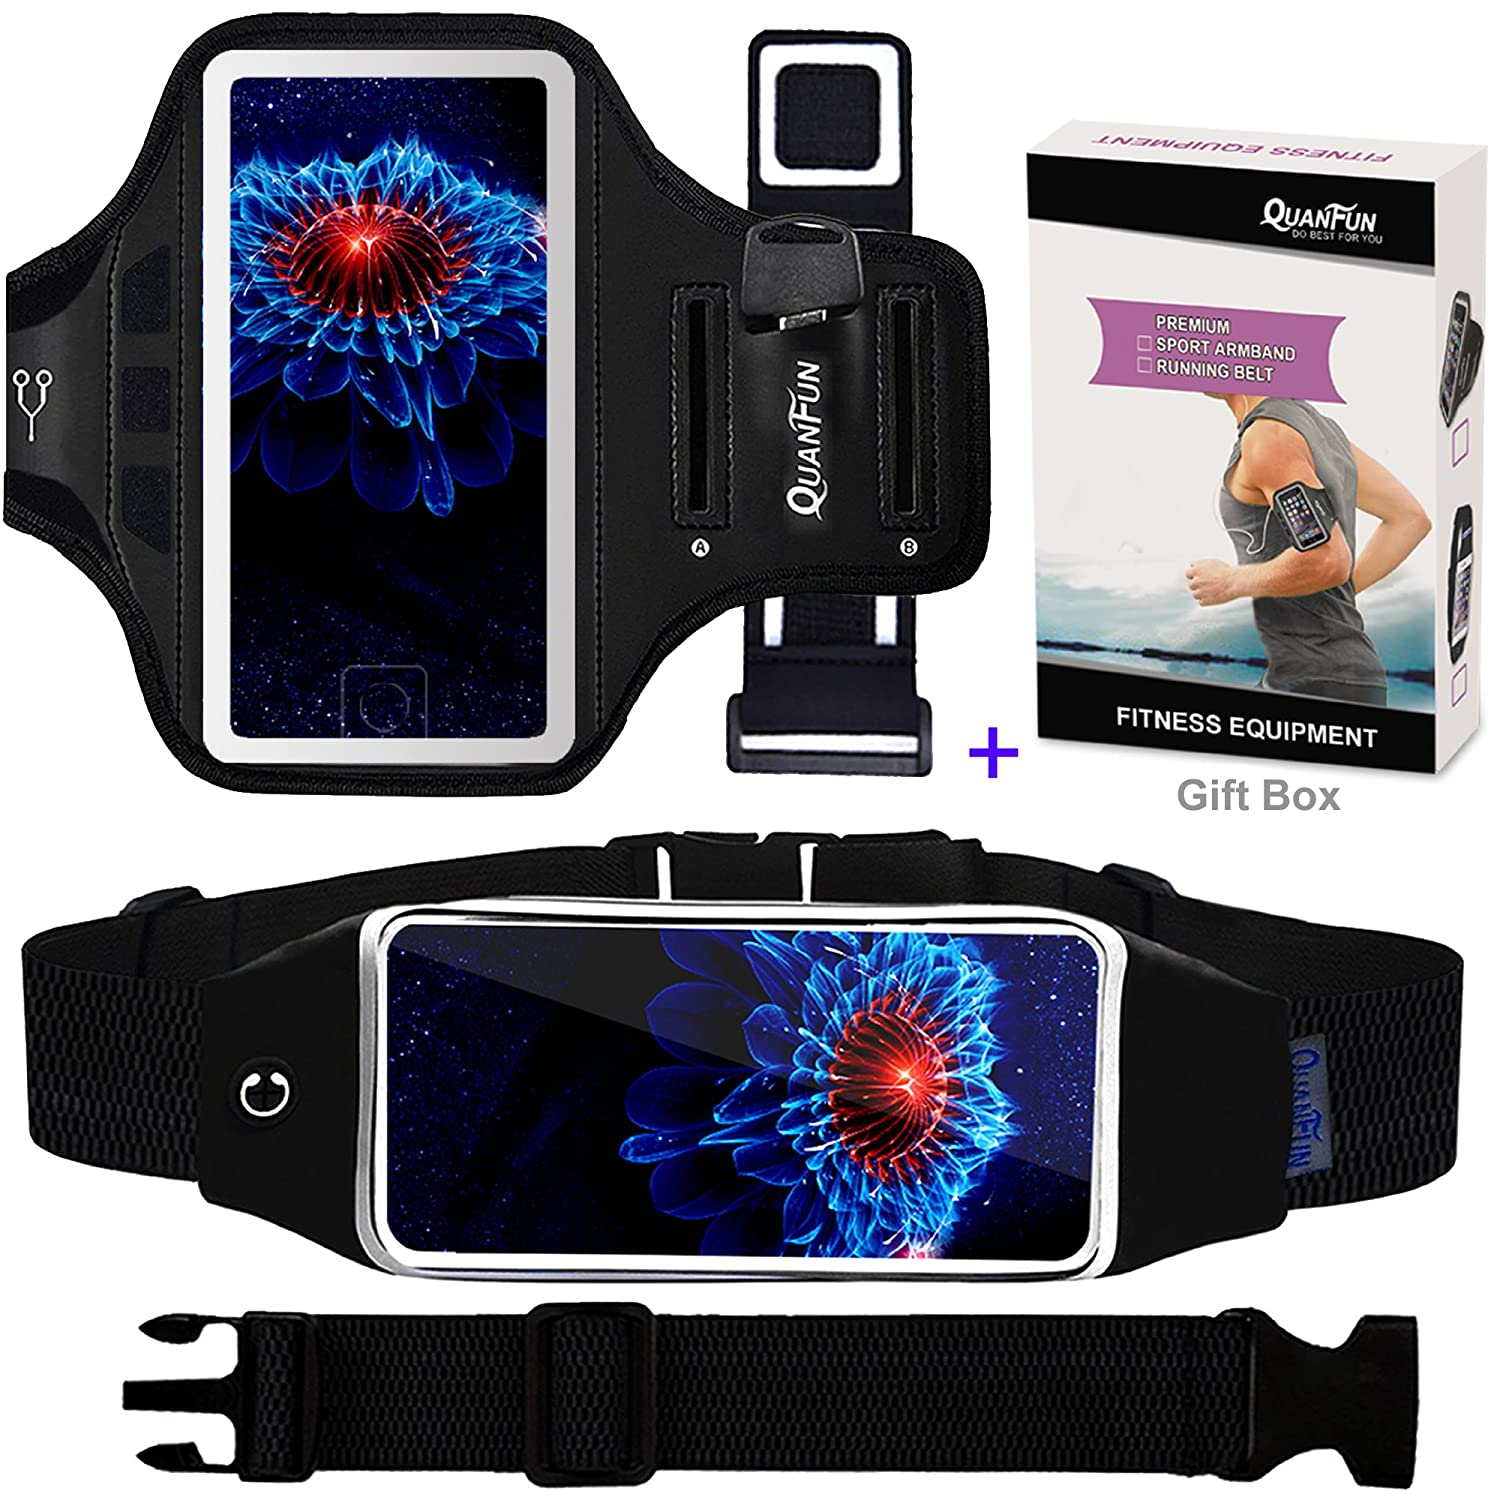 "Running Belt & Sport Armband for iPhone 7 6/6s, QUANFUN Fitness Workout Waist Pack Case Bag Gym Jogging Arm Band for Galaxy S8/S7/S6, Men/Women (XS to 4XL), Fits up to 5.1"" Phones/iPod/MP3 [3 IN 1] Armband-004-2PACK"